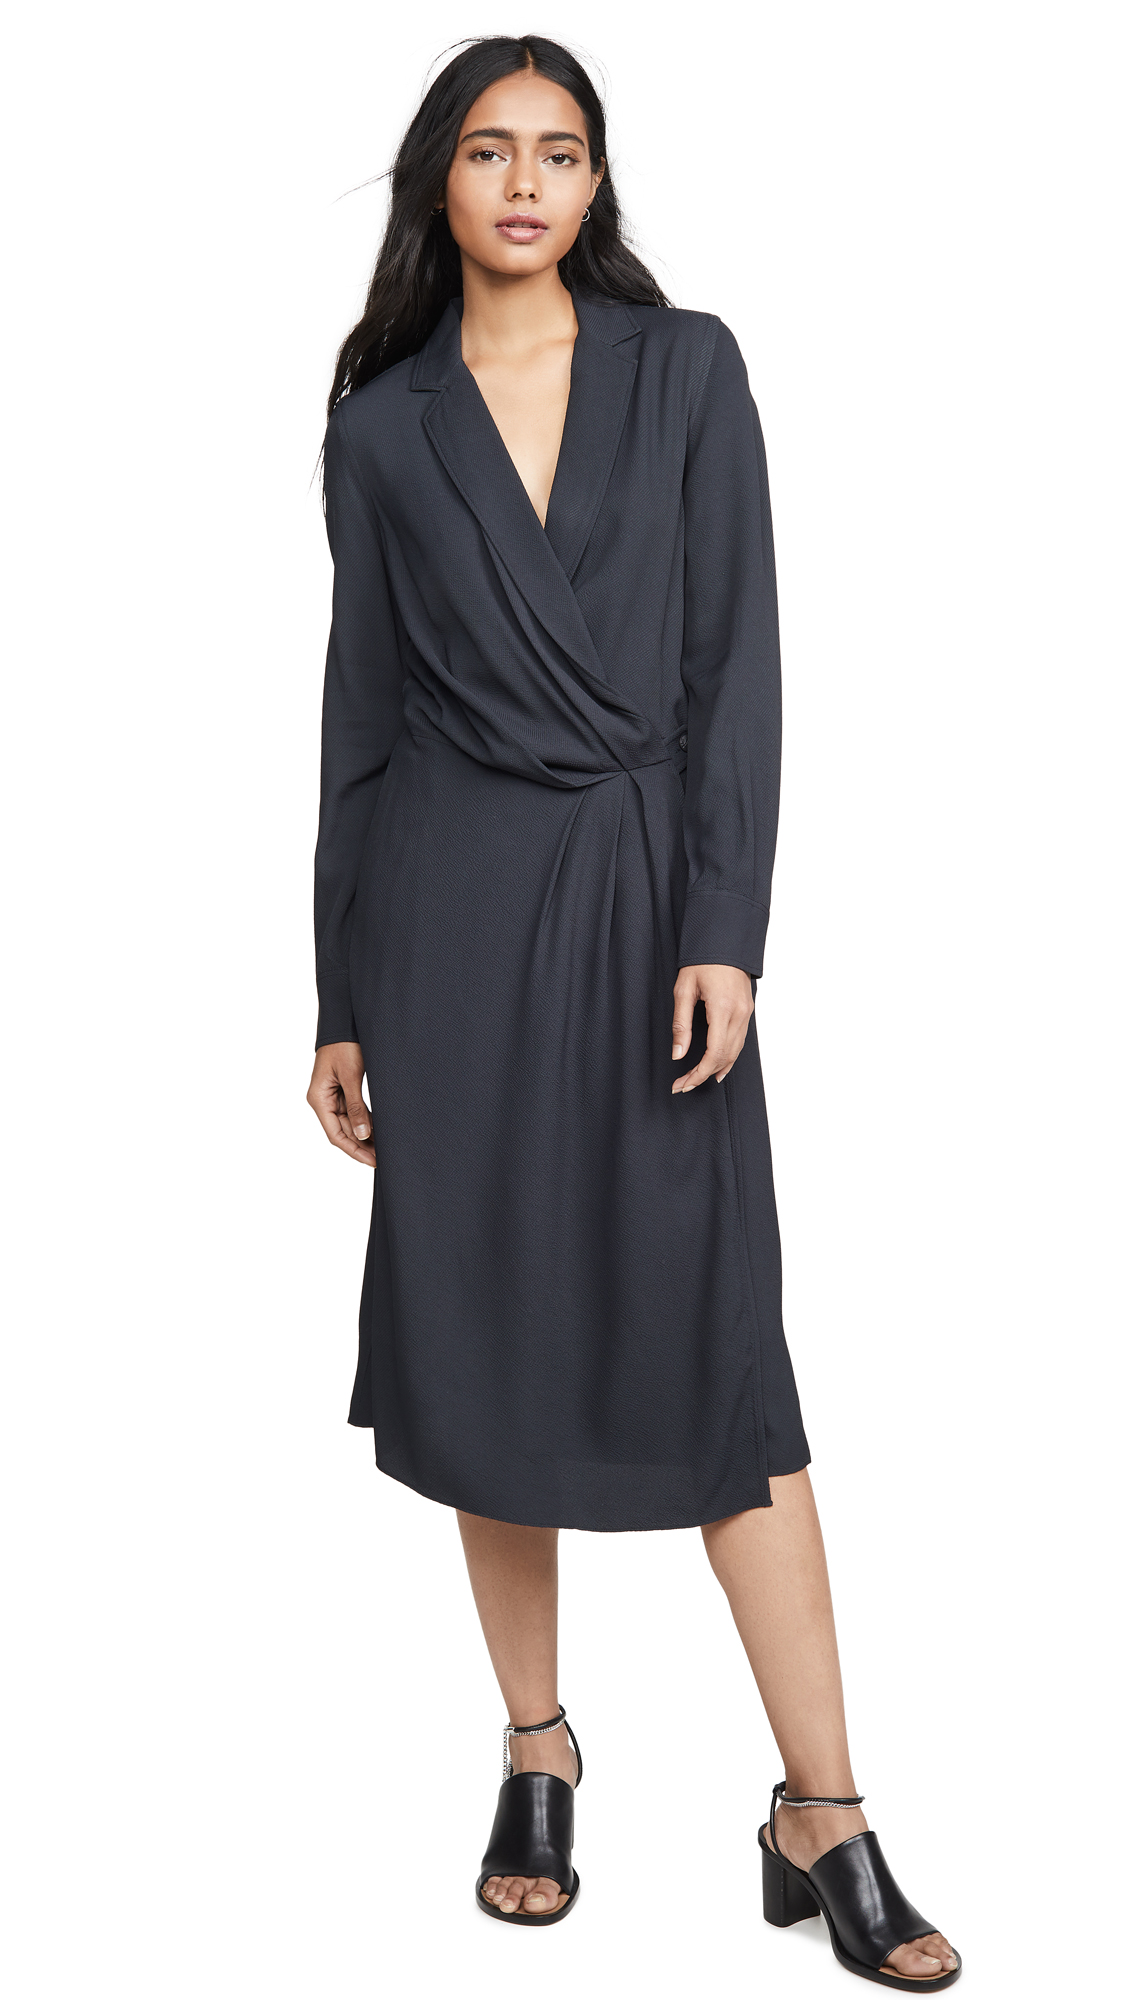 Rag & Bone Dean Dress - 70% Off Sale